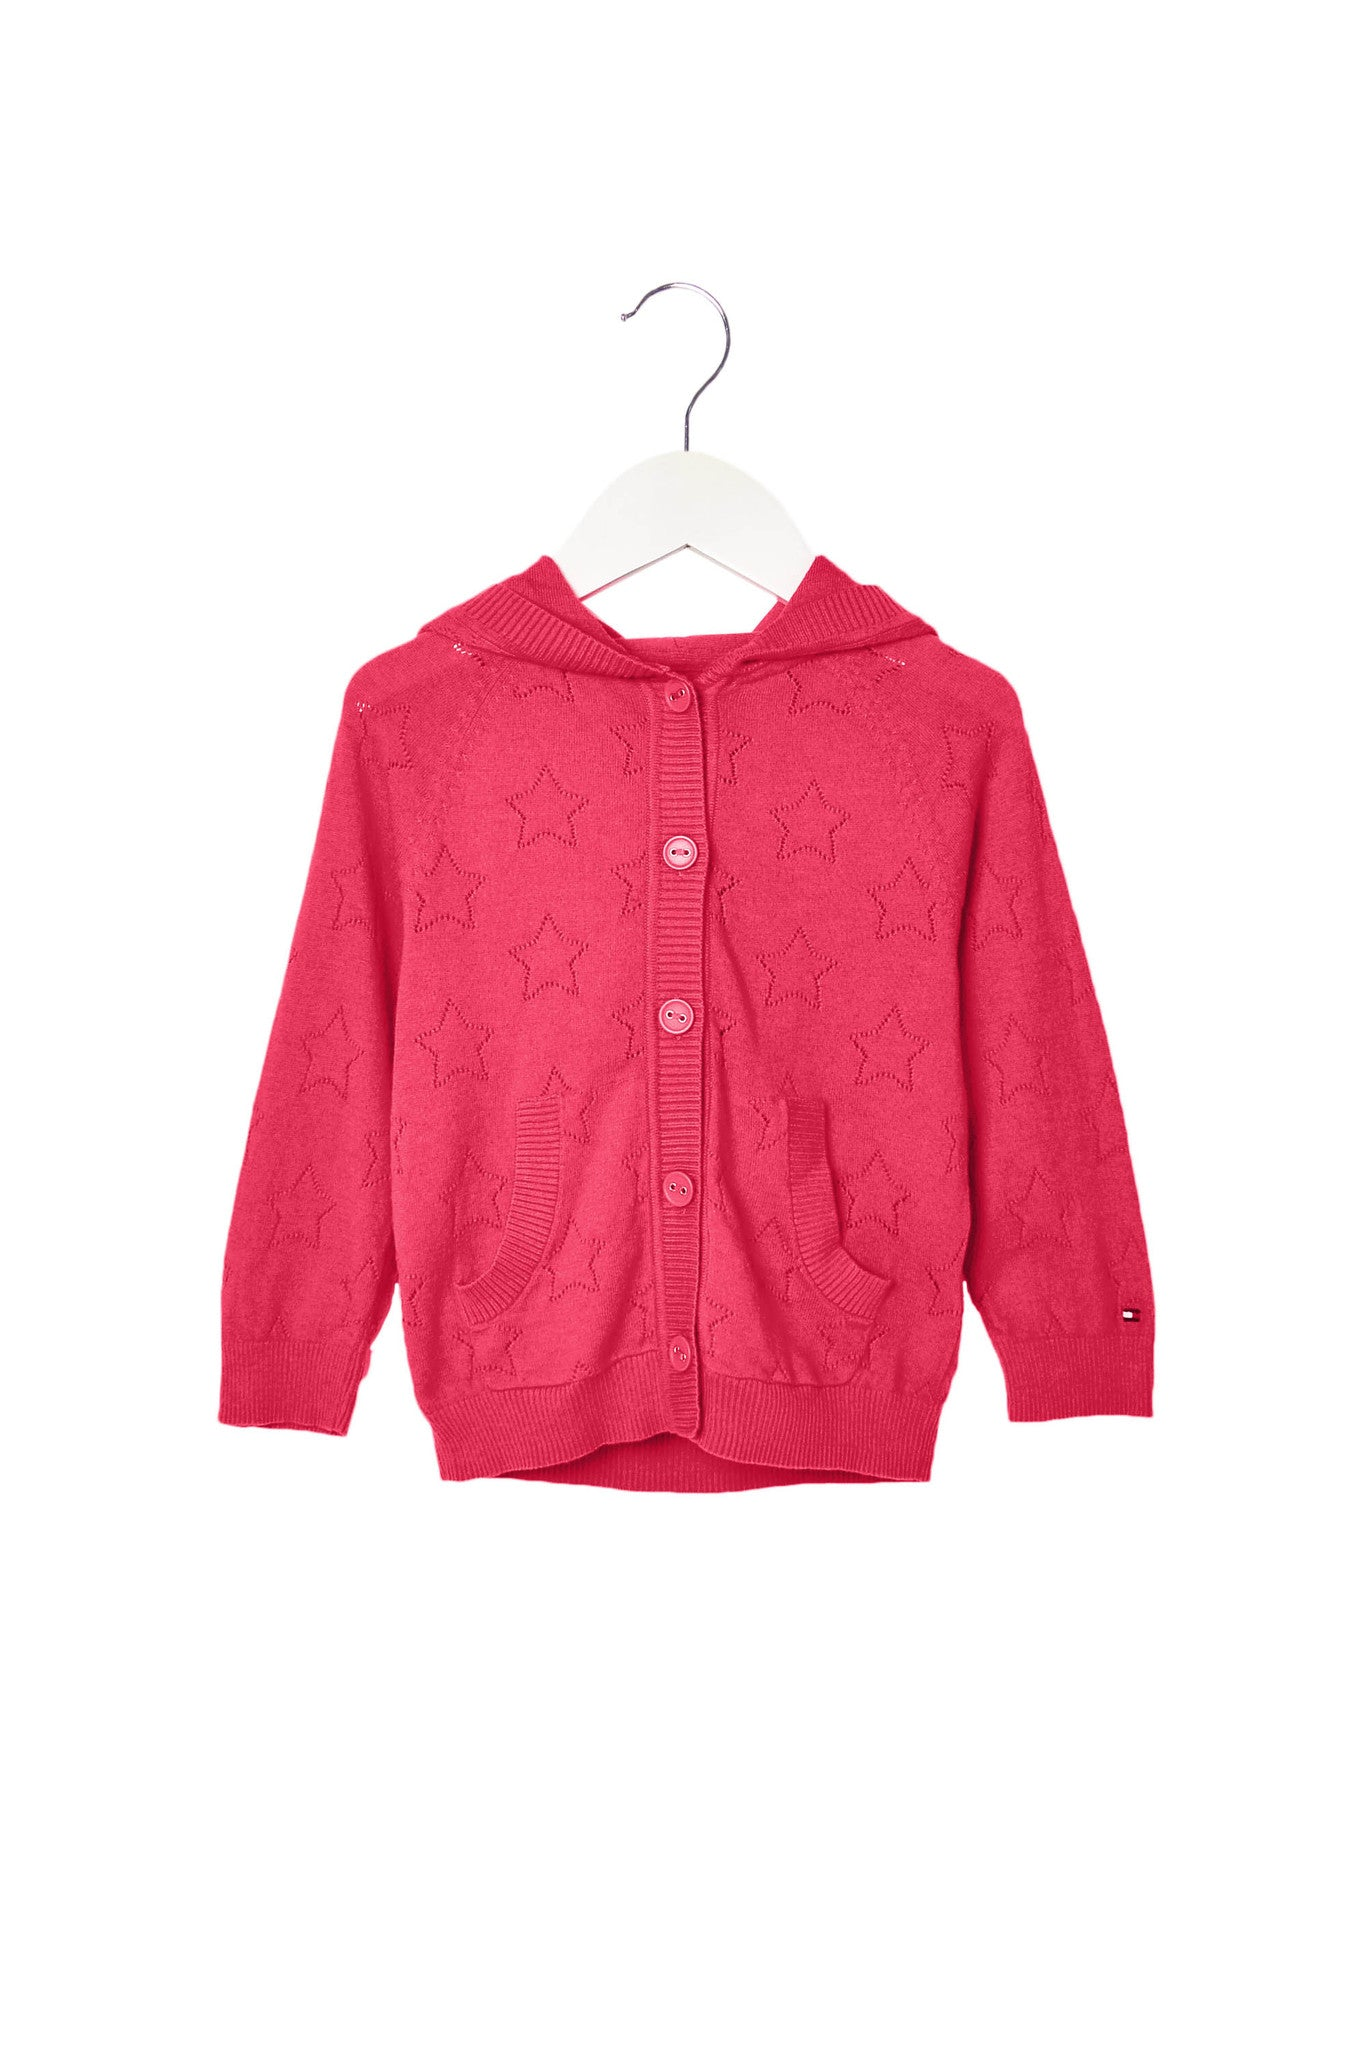 10003619 Tommy Hilfiger Kids~Cardigan 2T at Retykle